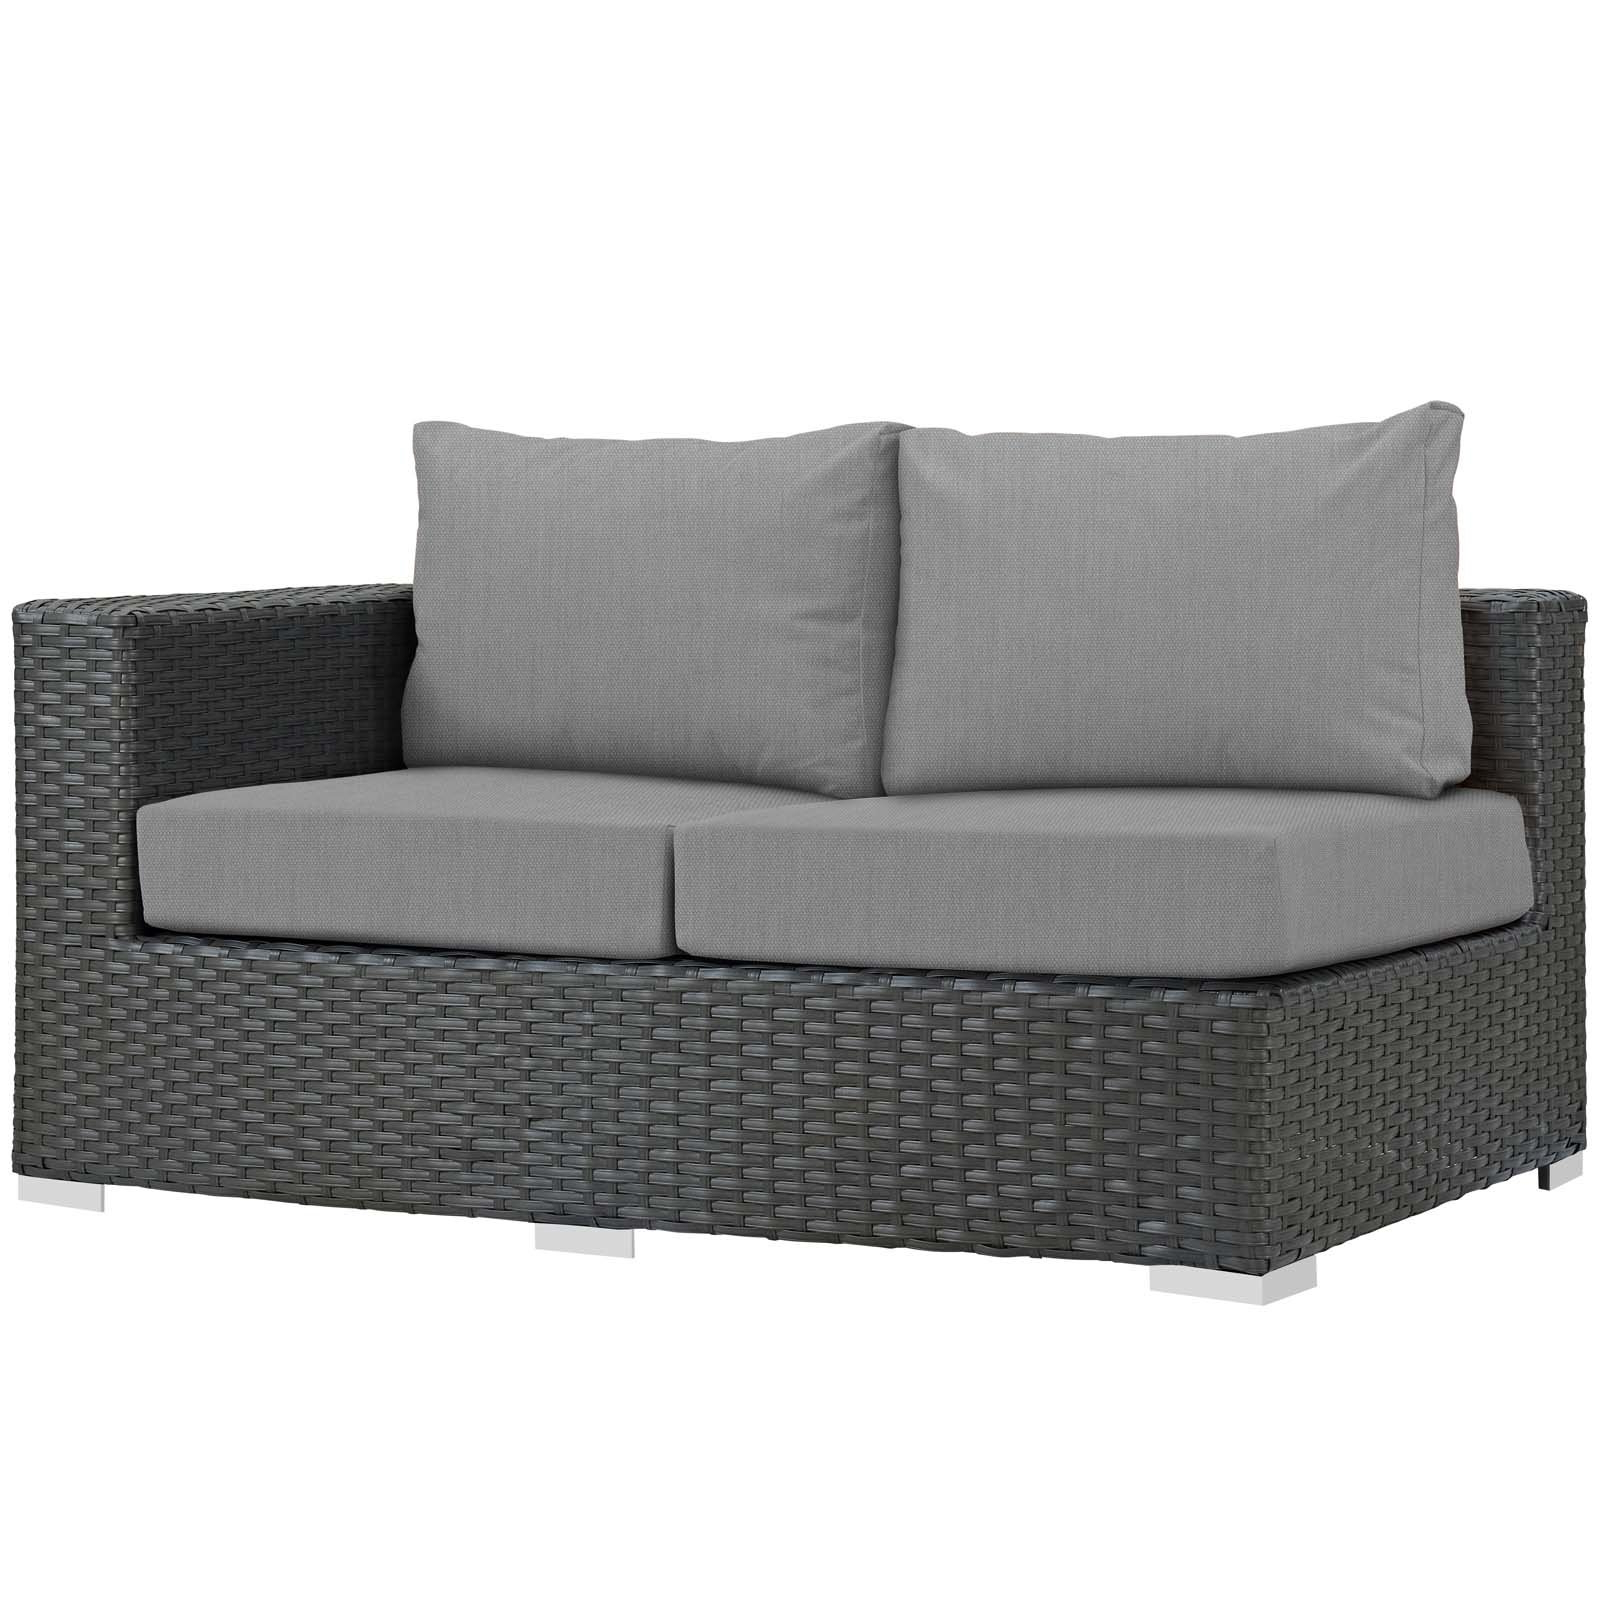 Tripp Right Arm Loveseat Sectional Piece With Cushions Within Most Recently Released Tripp Patio Daybeds With Cushions (View 14 of 20)